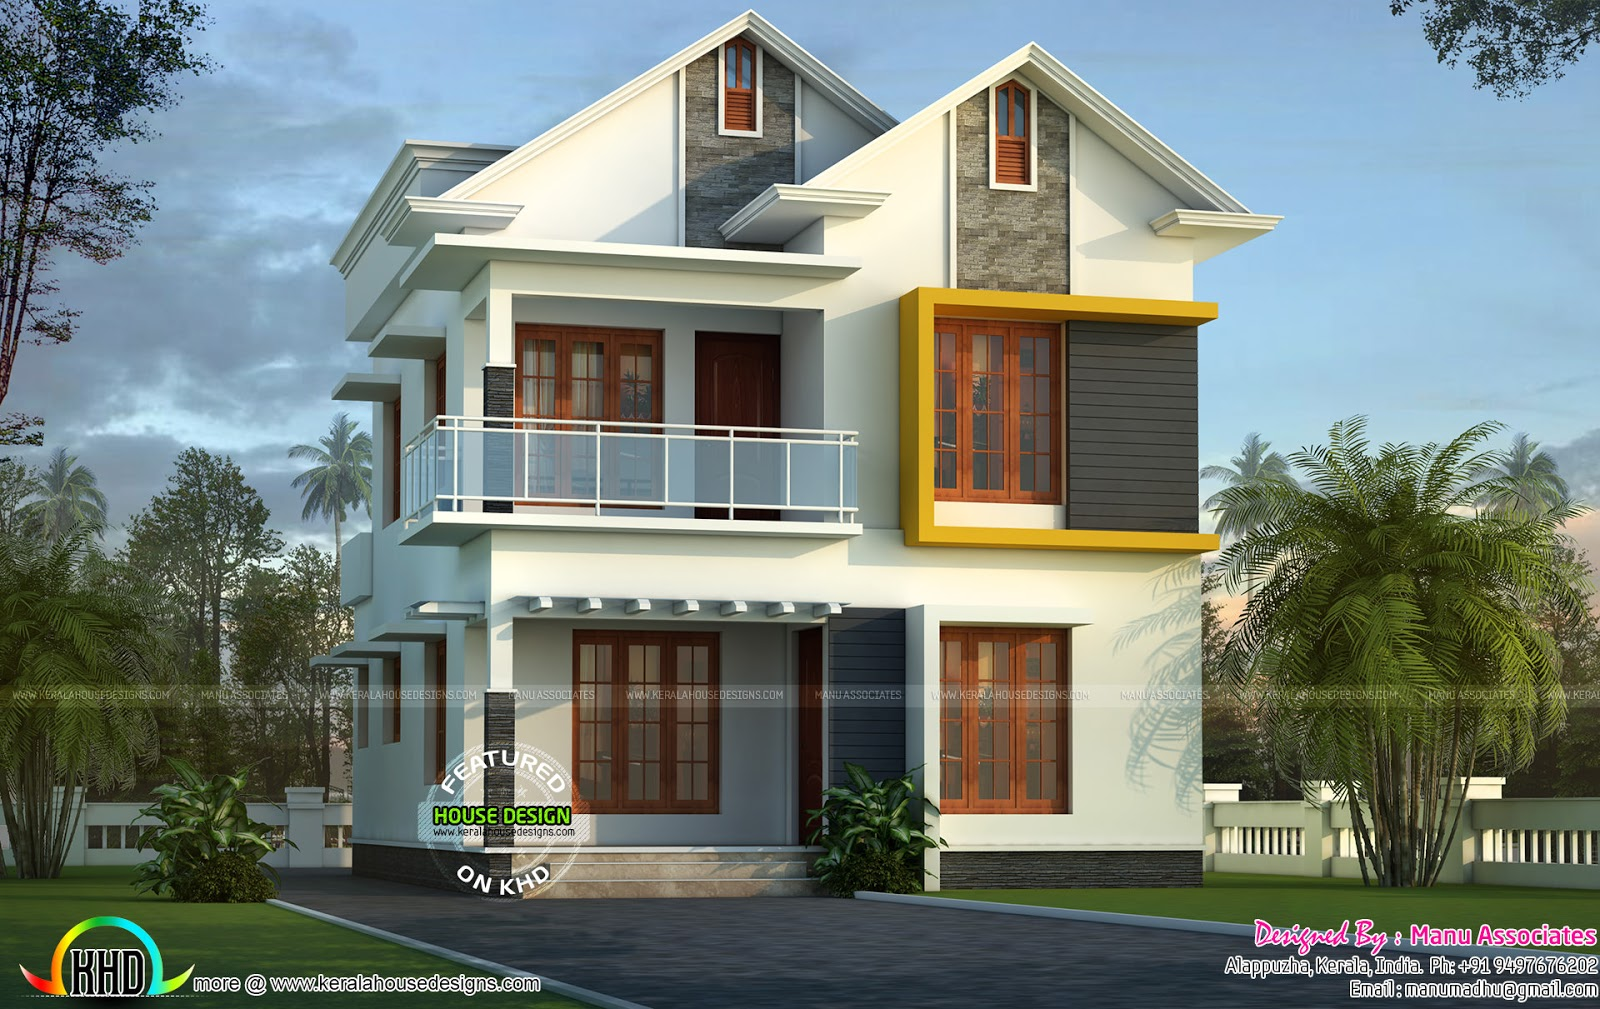 100 kerala home design contact kerala home design 828 sq ft 2 bedroom low cost plan - Kerala beautiful house ...